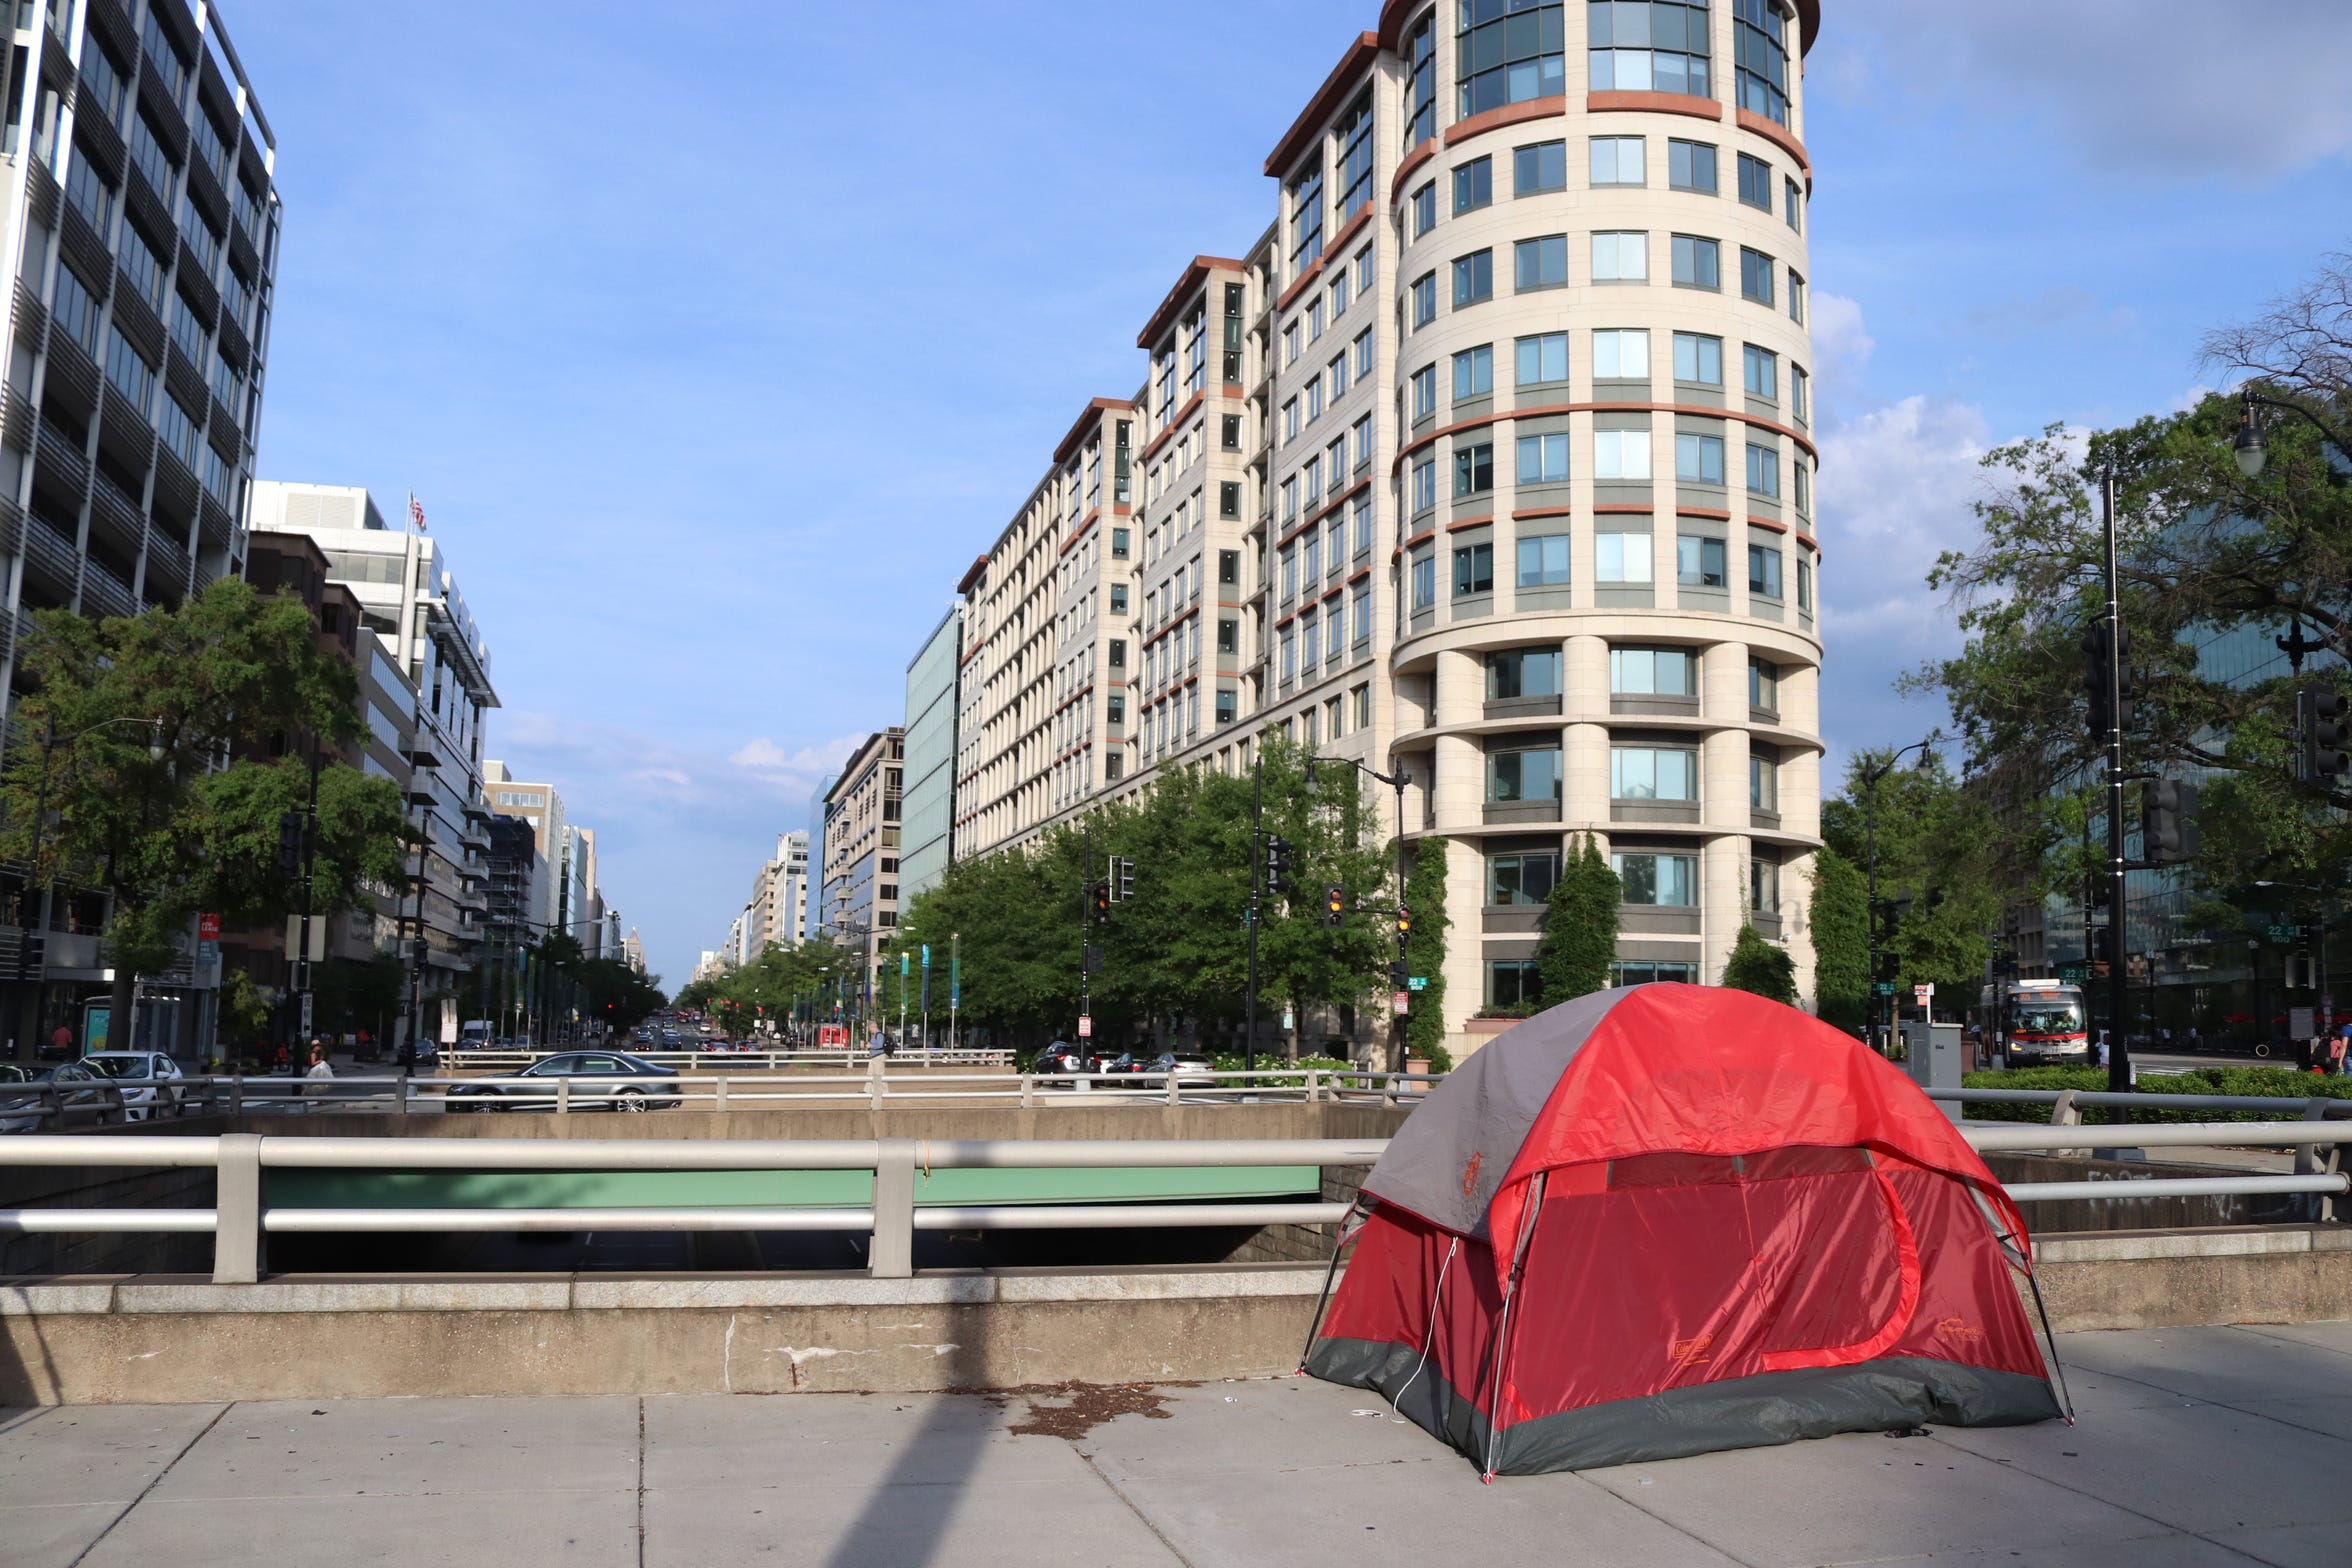 While visiting the U.S. from Russia Pavel Alekseev notices tents of homeless people on the street of Washington D.C.